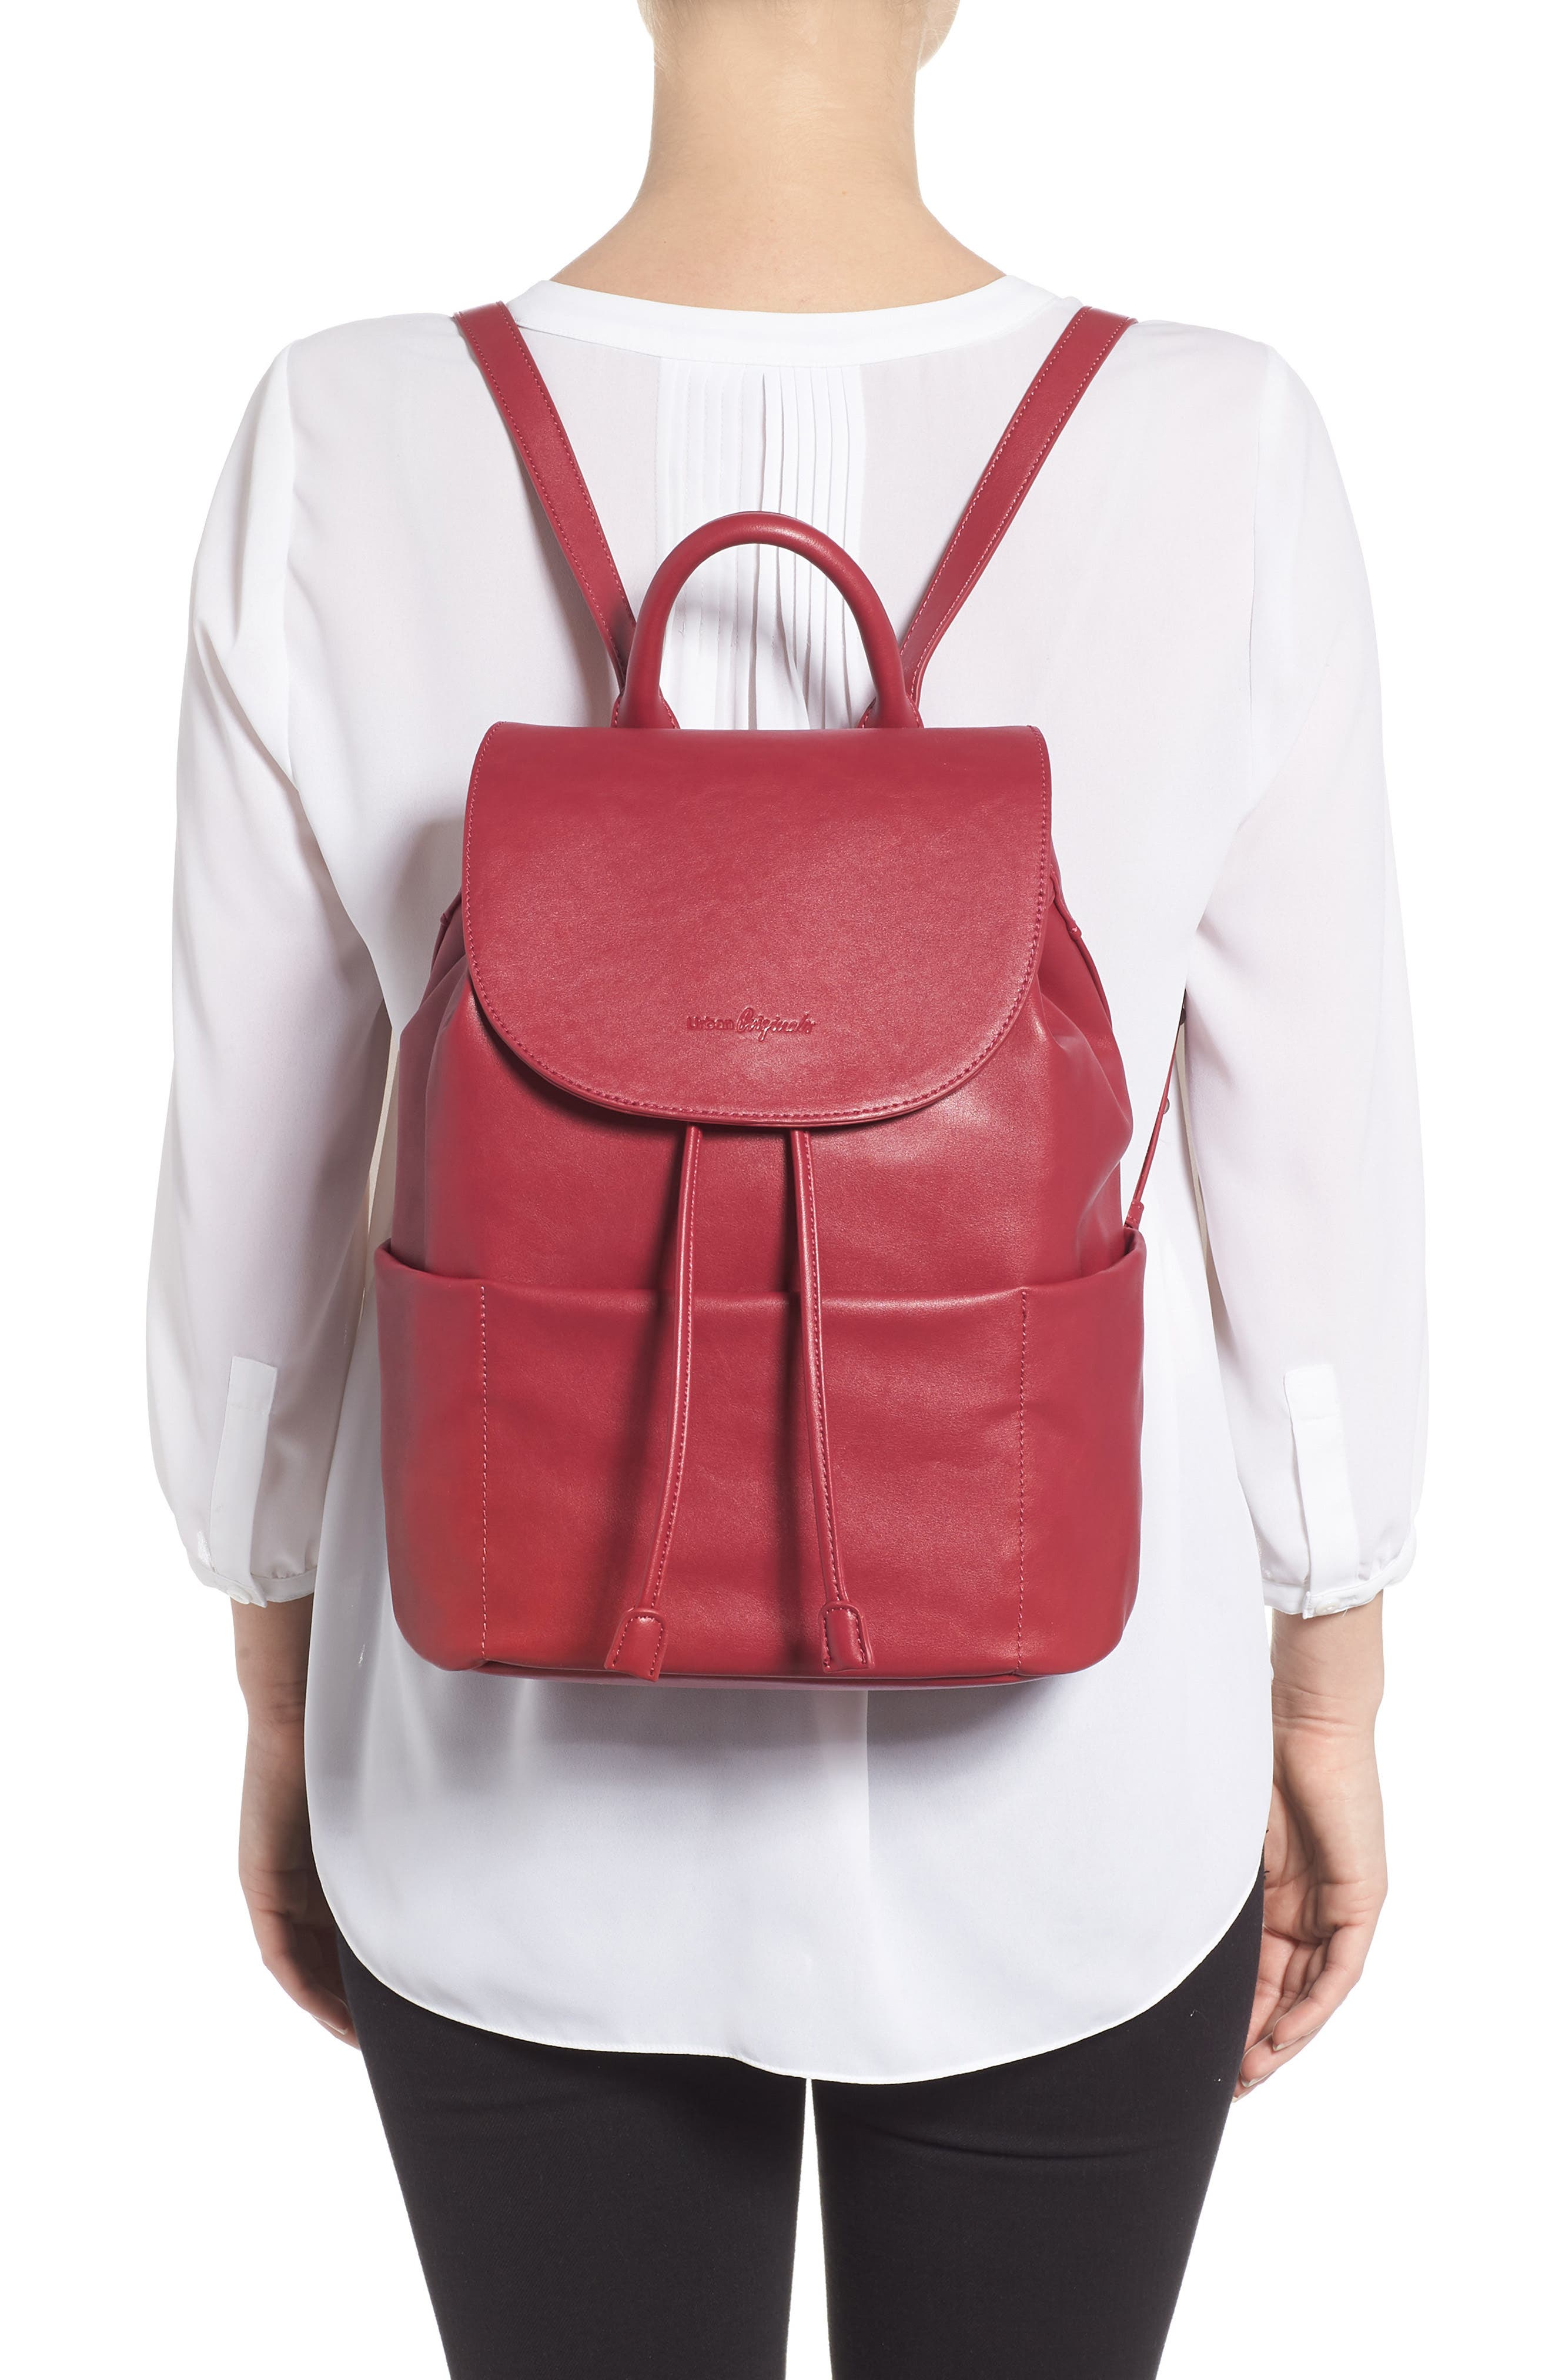 Splendour Vegan Leather Backpack,                             Alternate thumbnail 2, color,                             Cranberry